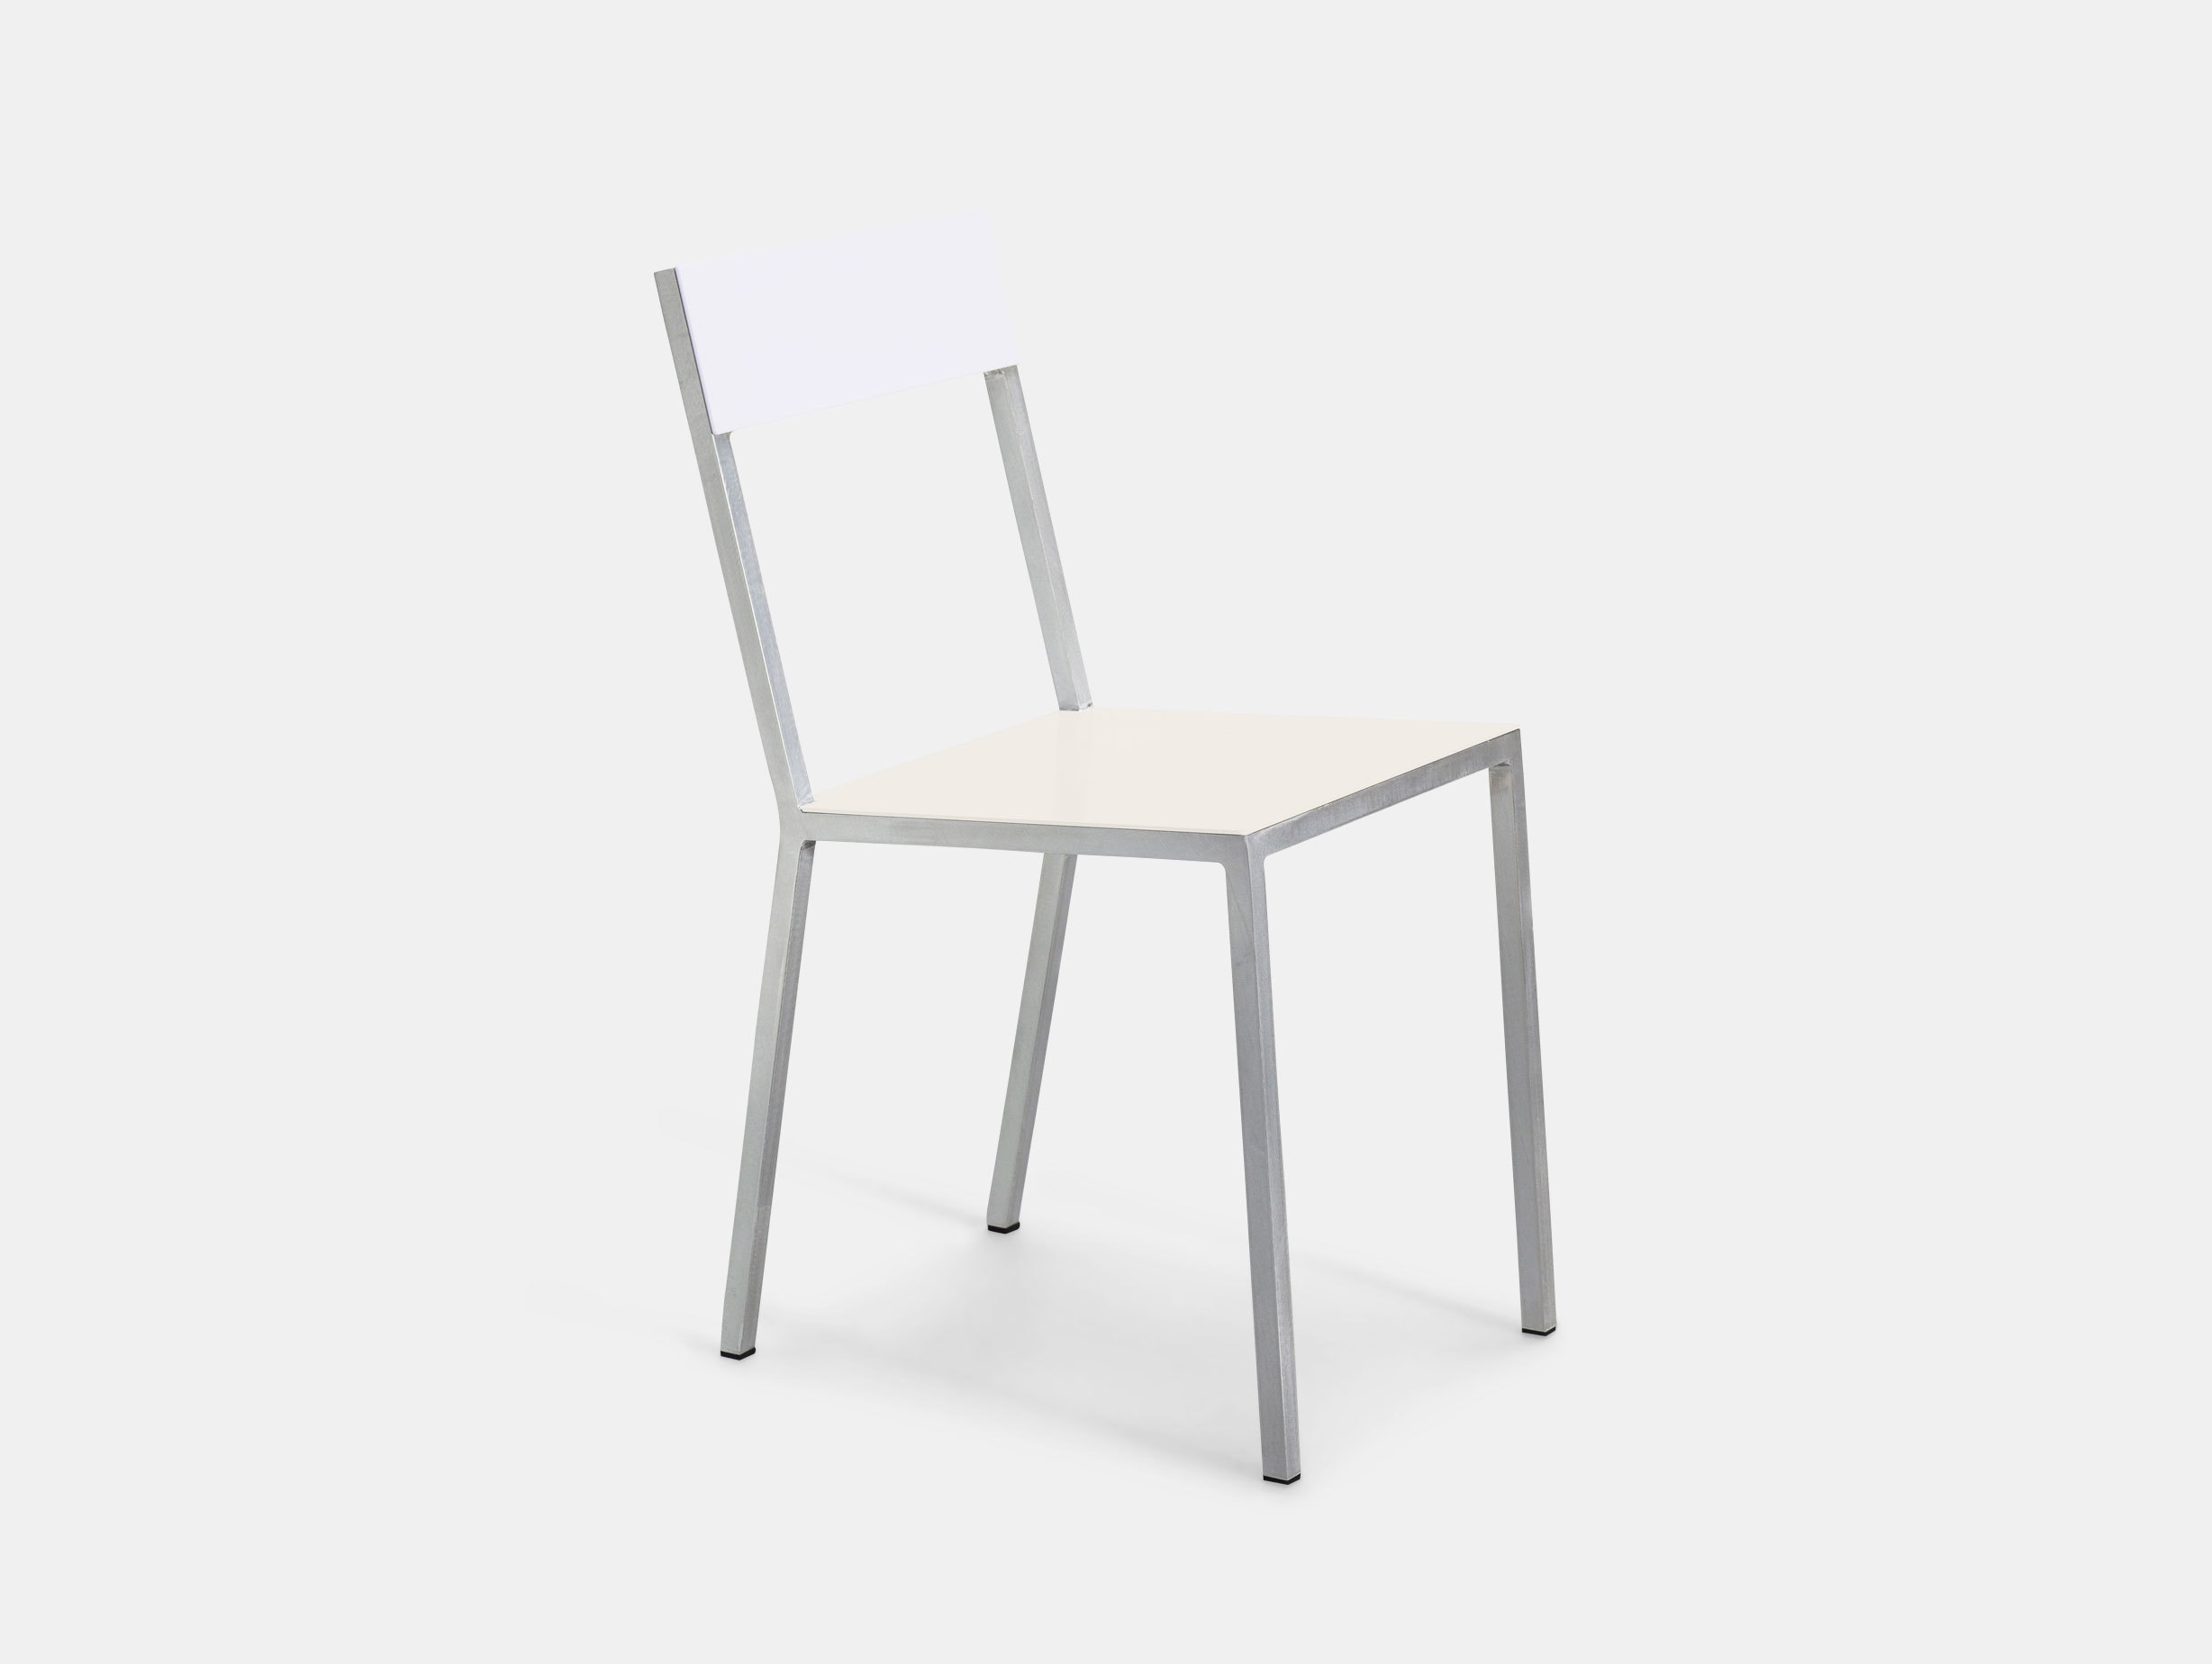 Alu Chair image 15